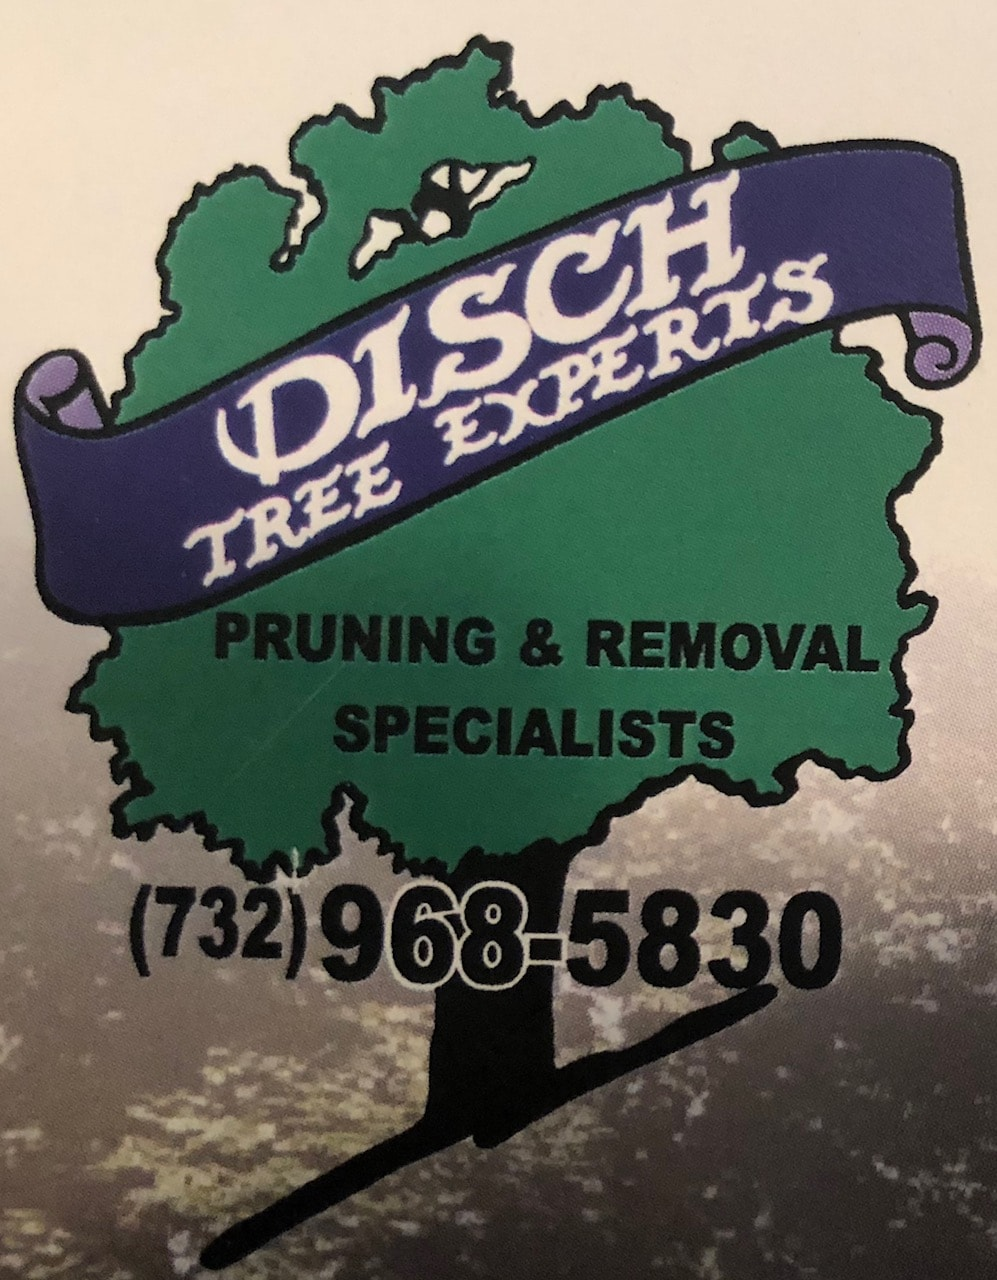 DISCH TREE EXPERTS